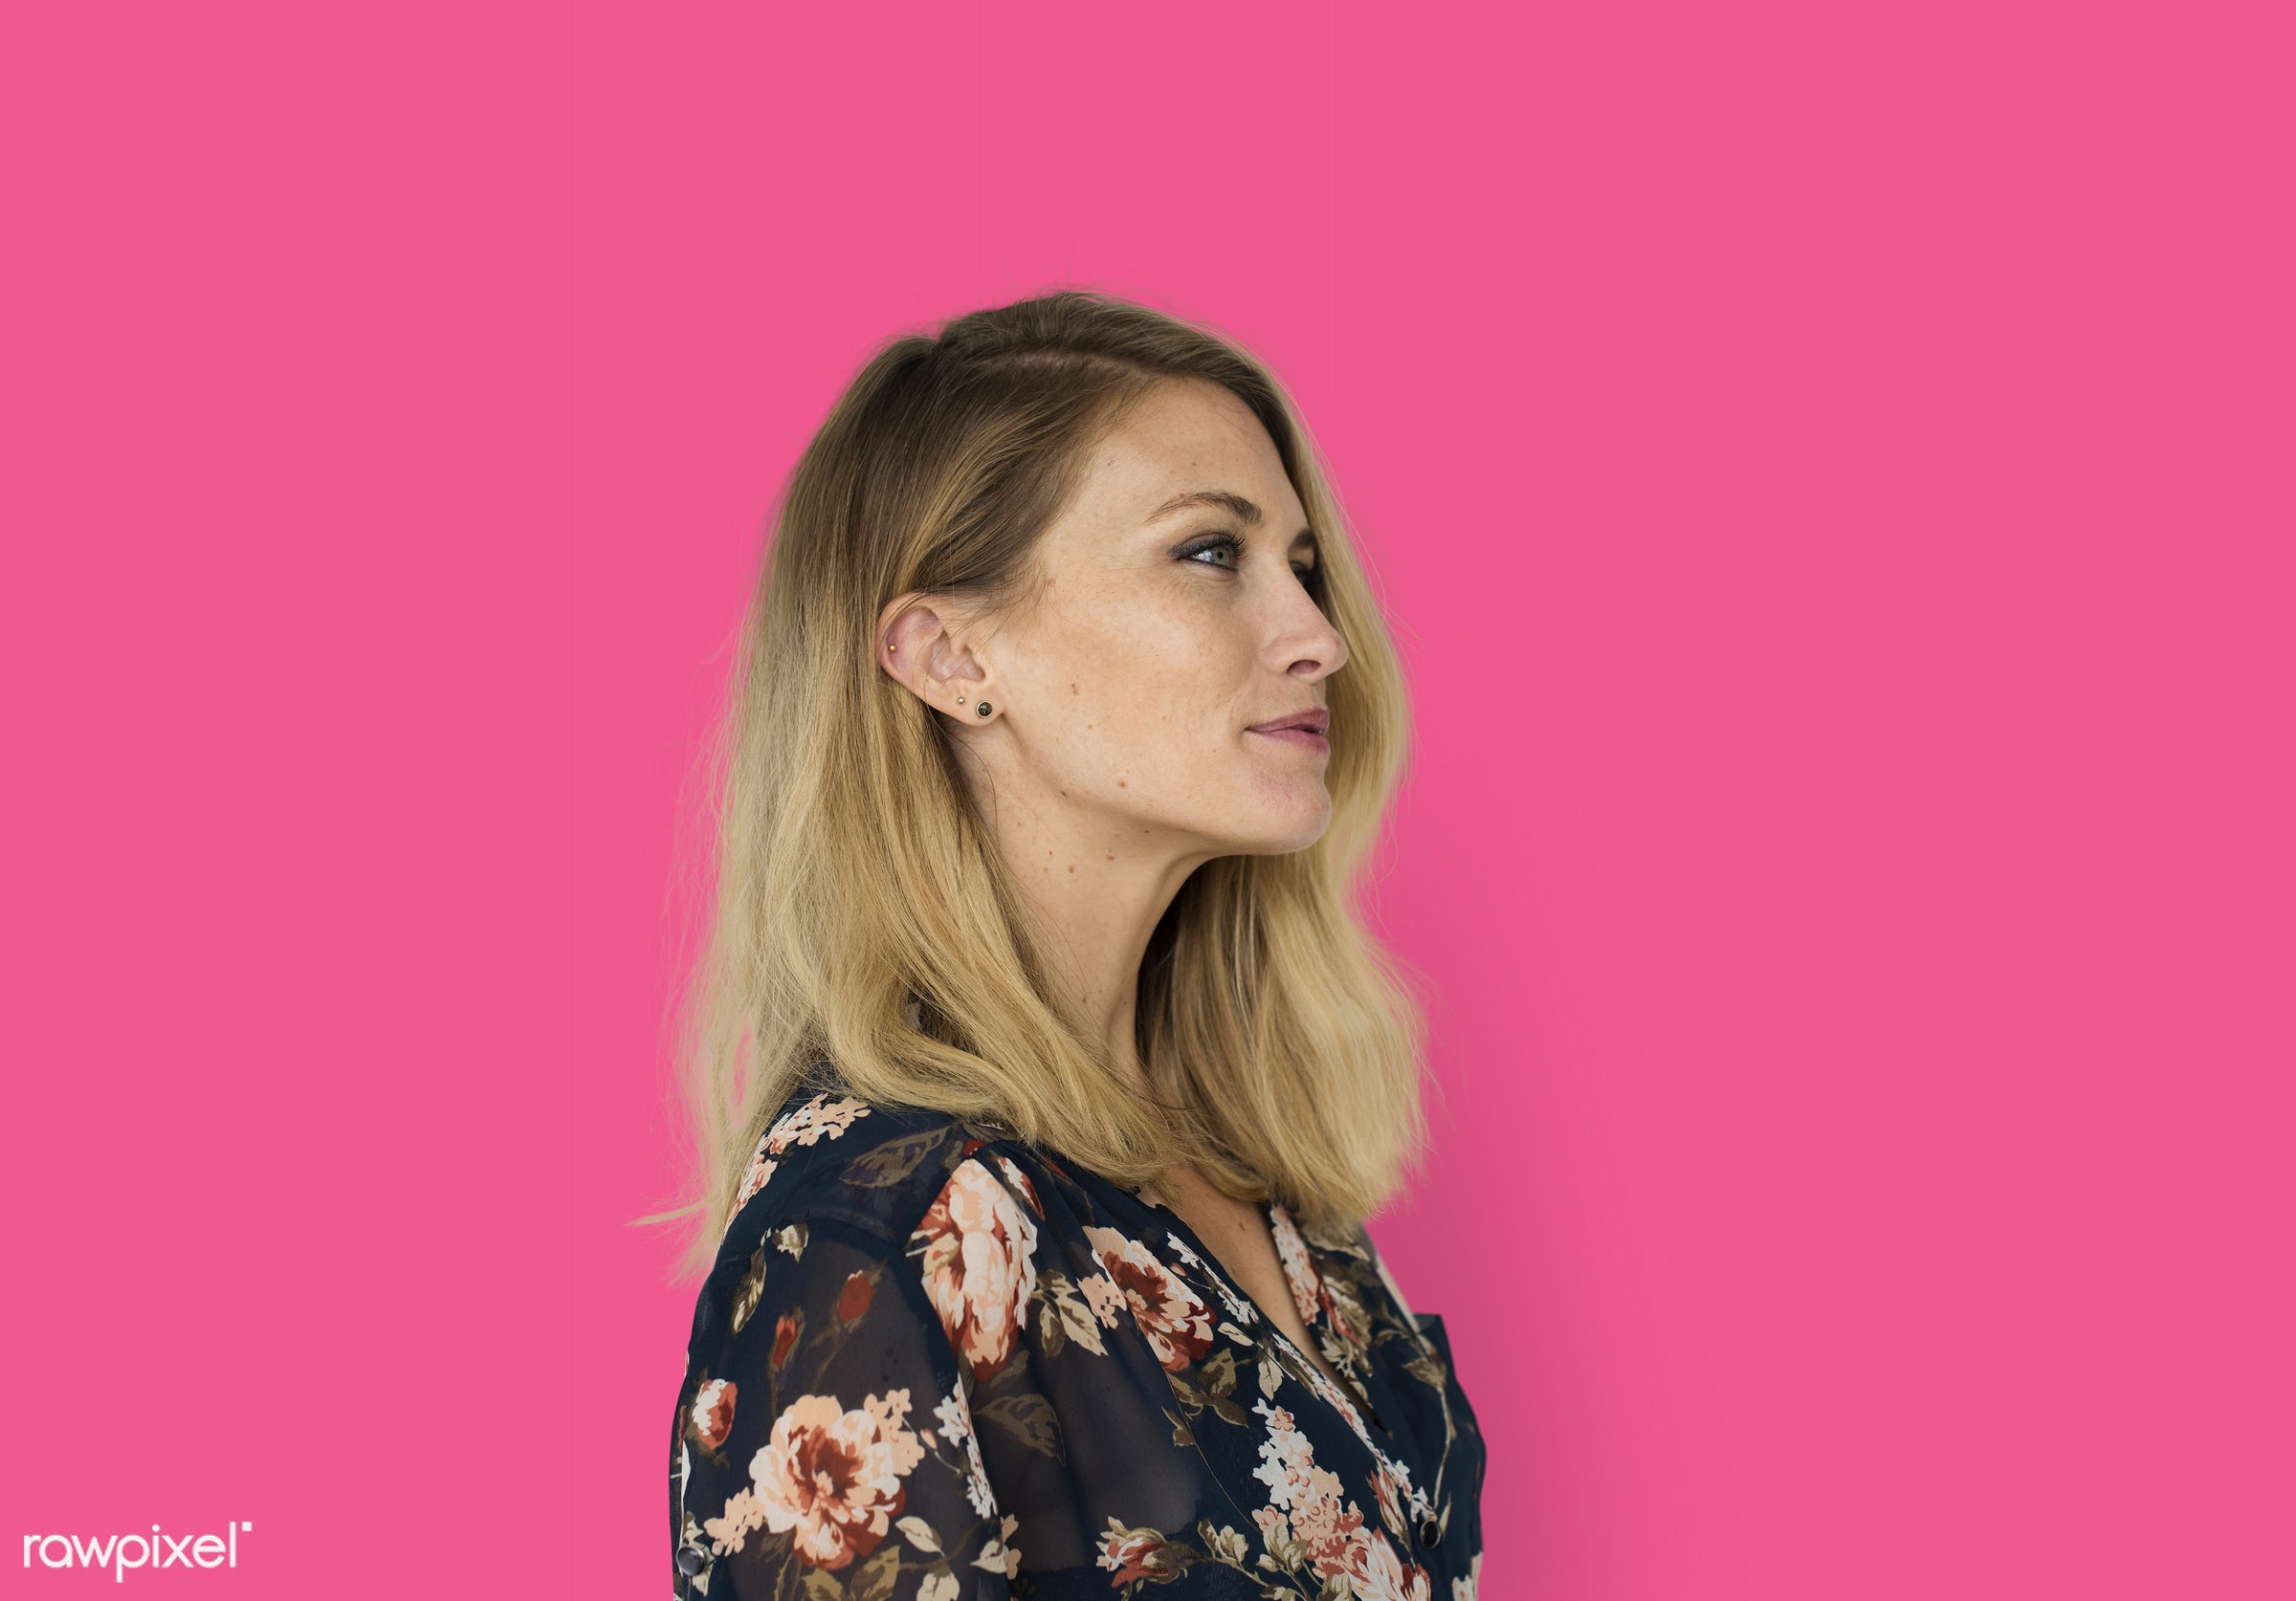 studio, expression, person, people, caucasian, woman, lifestyle, pink, positive, smile, cheerful, isolated, happiness,...